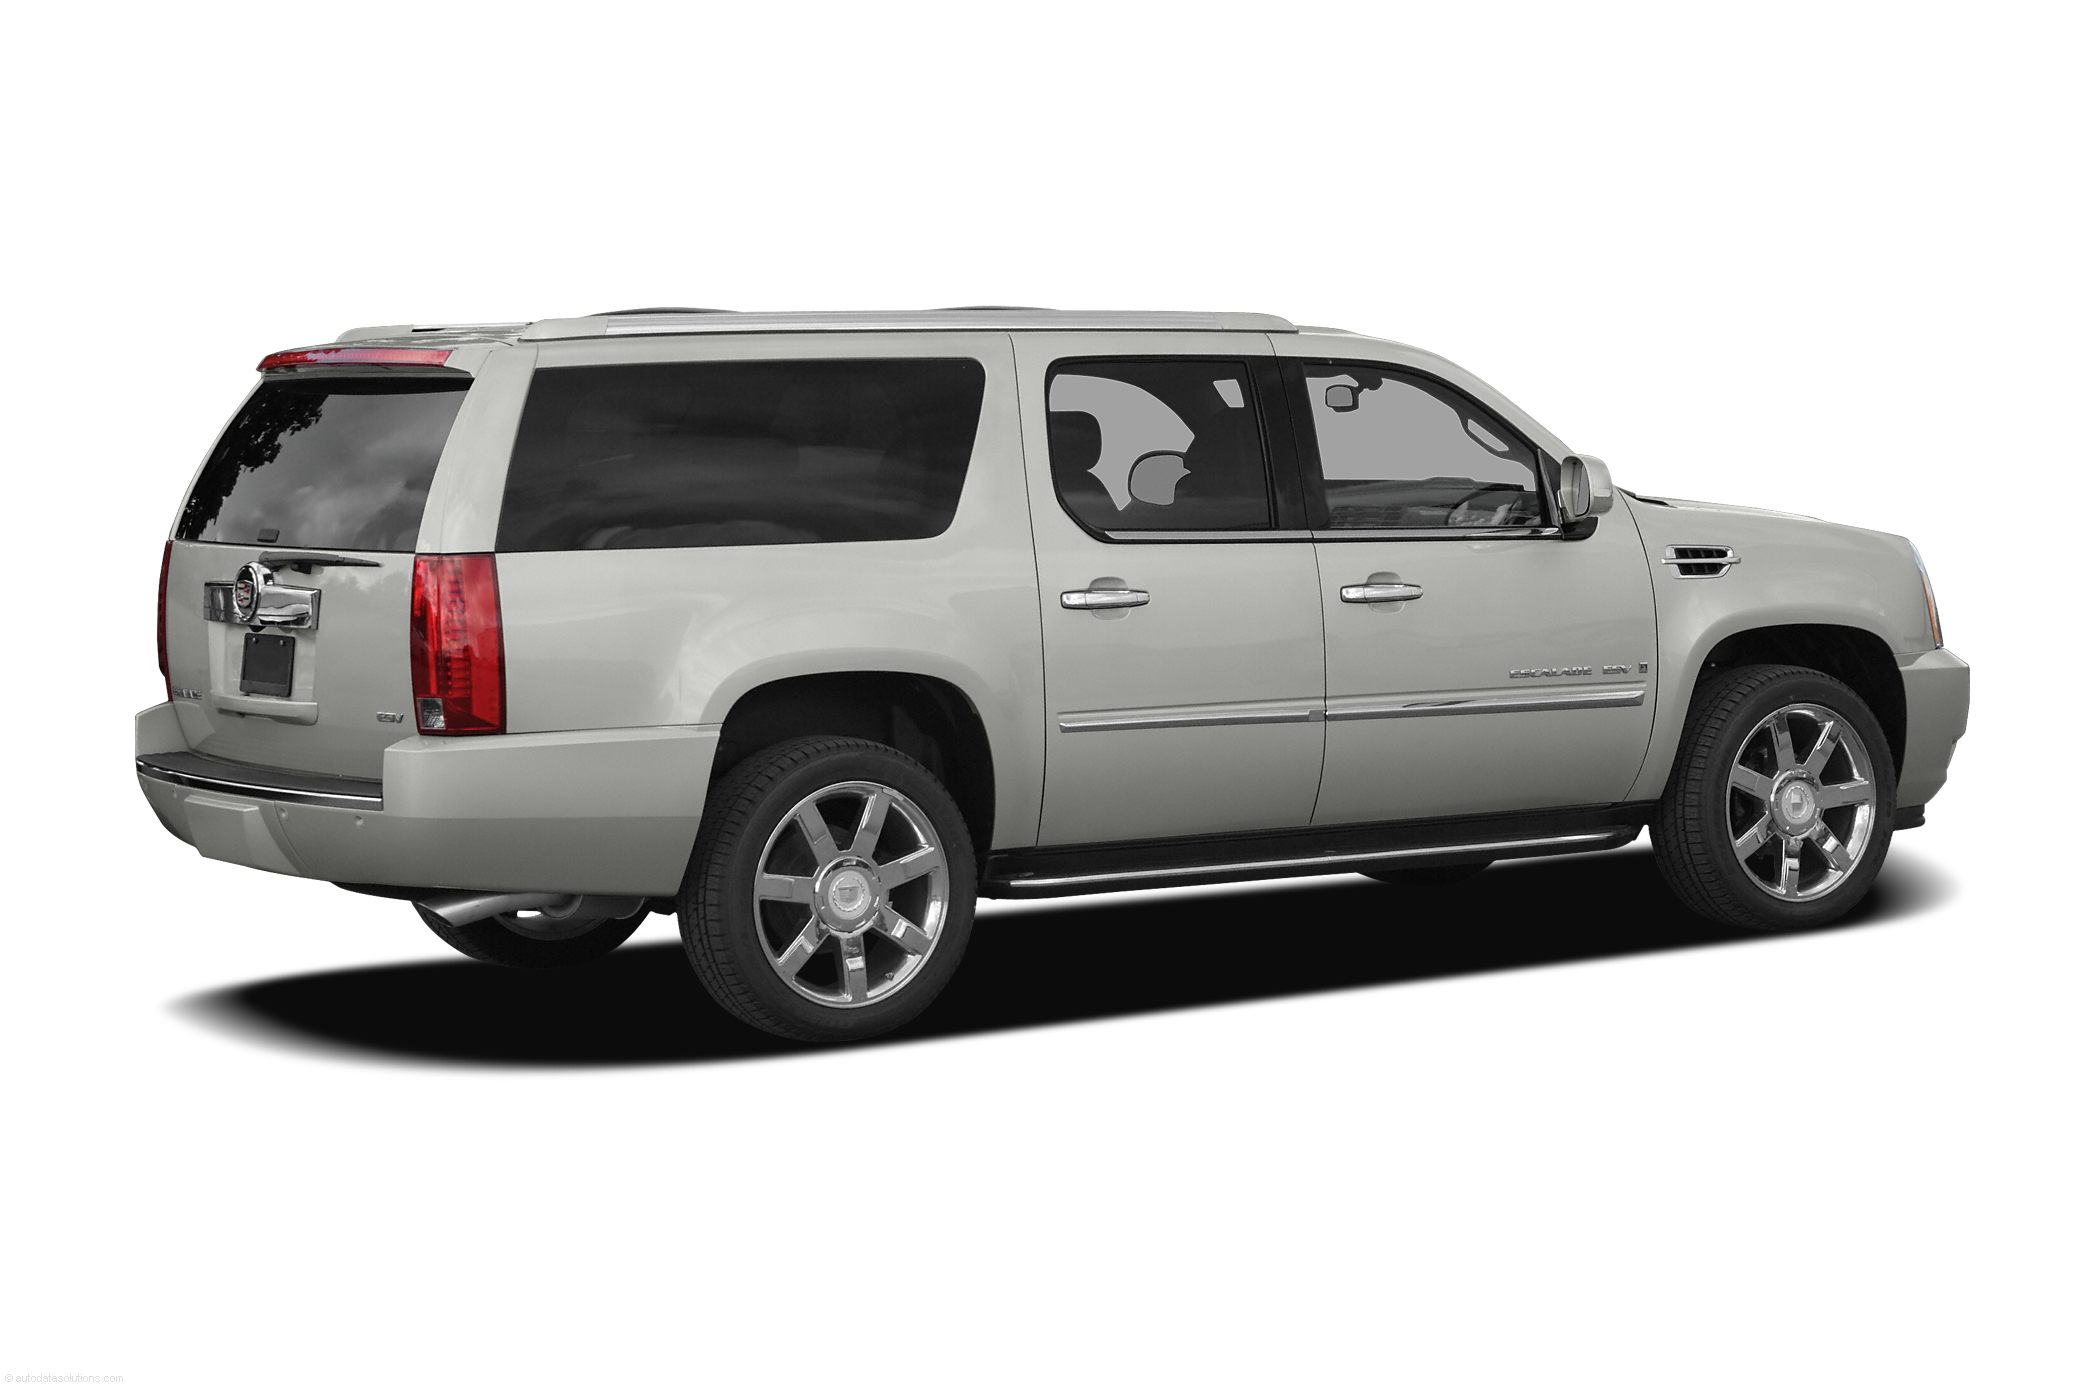 2010-Cadillac-Escalade-ESV-SUV-Base-4x2-Exterior-Back-Side-View